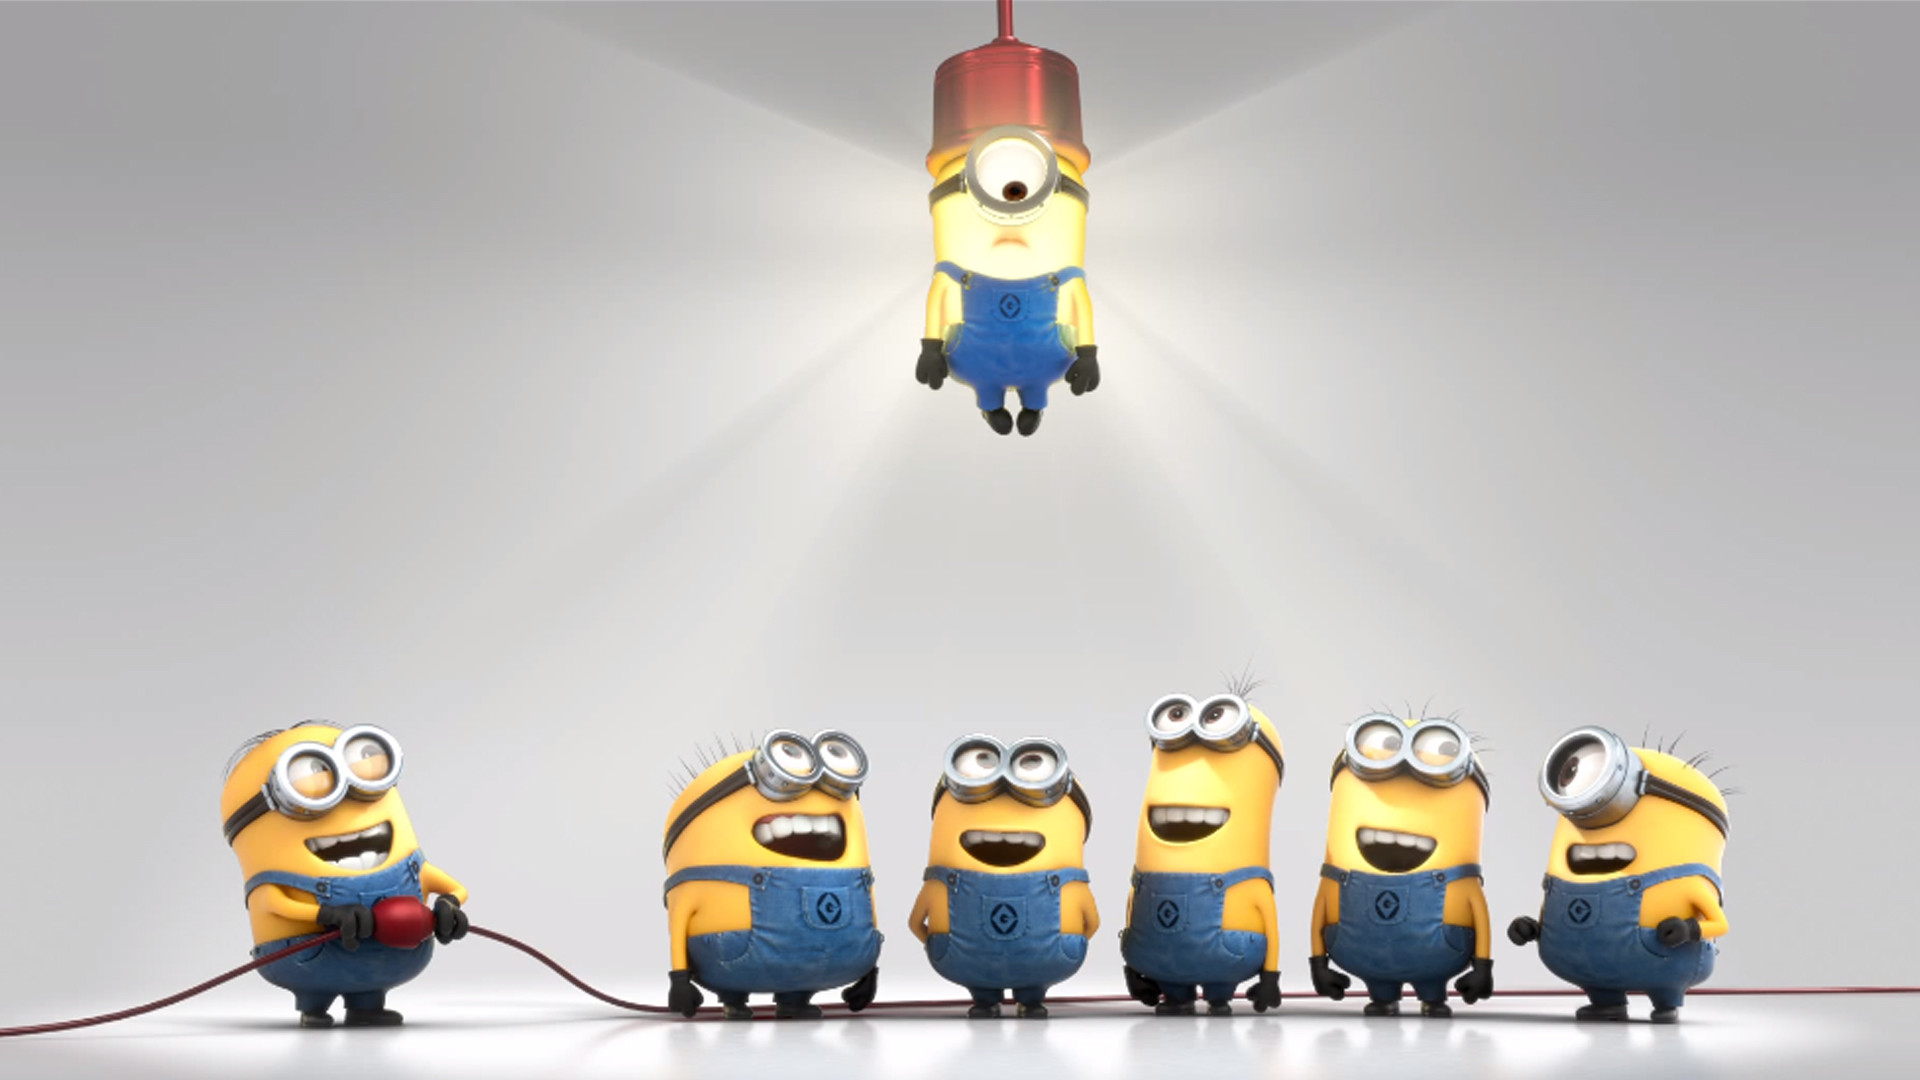 Res: 1920x1080, Minions animated film hd wallpapers